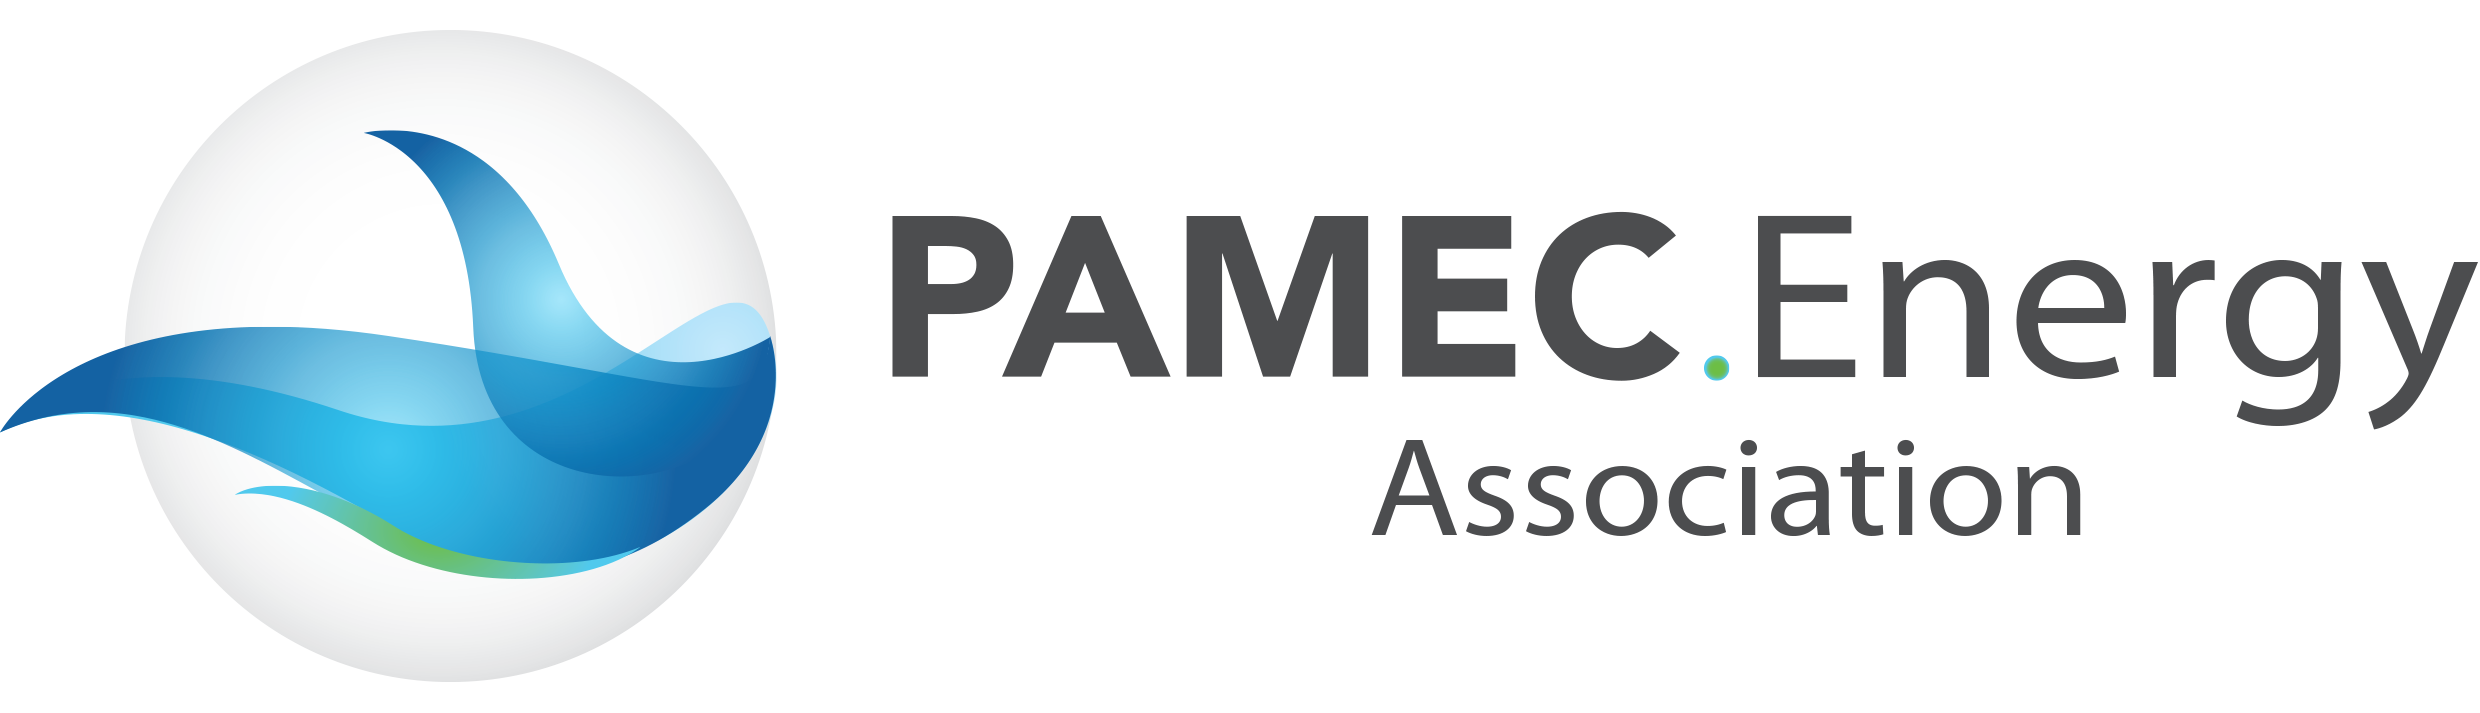 PAMEC.Energy Association